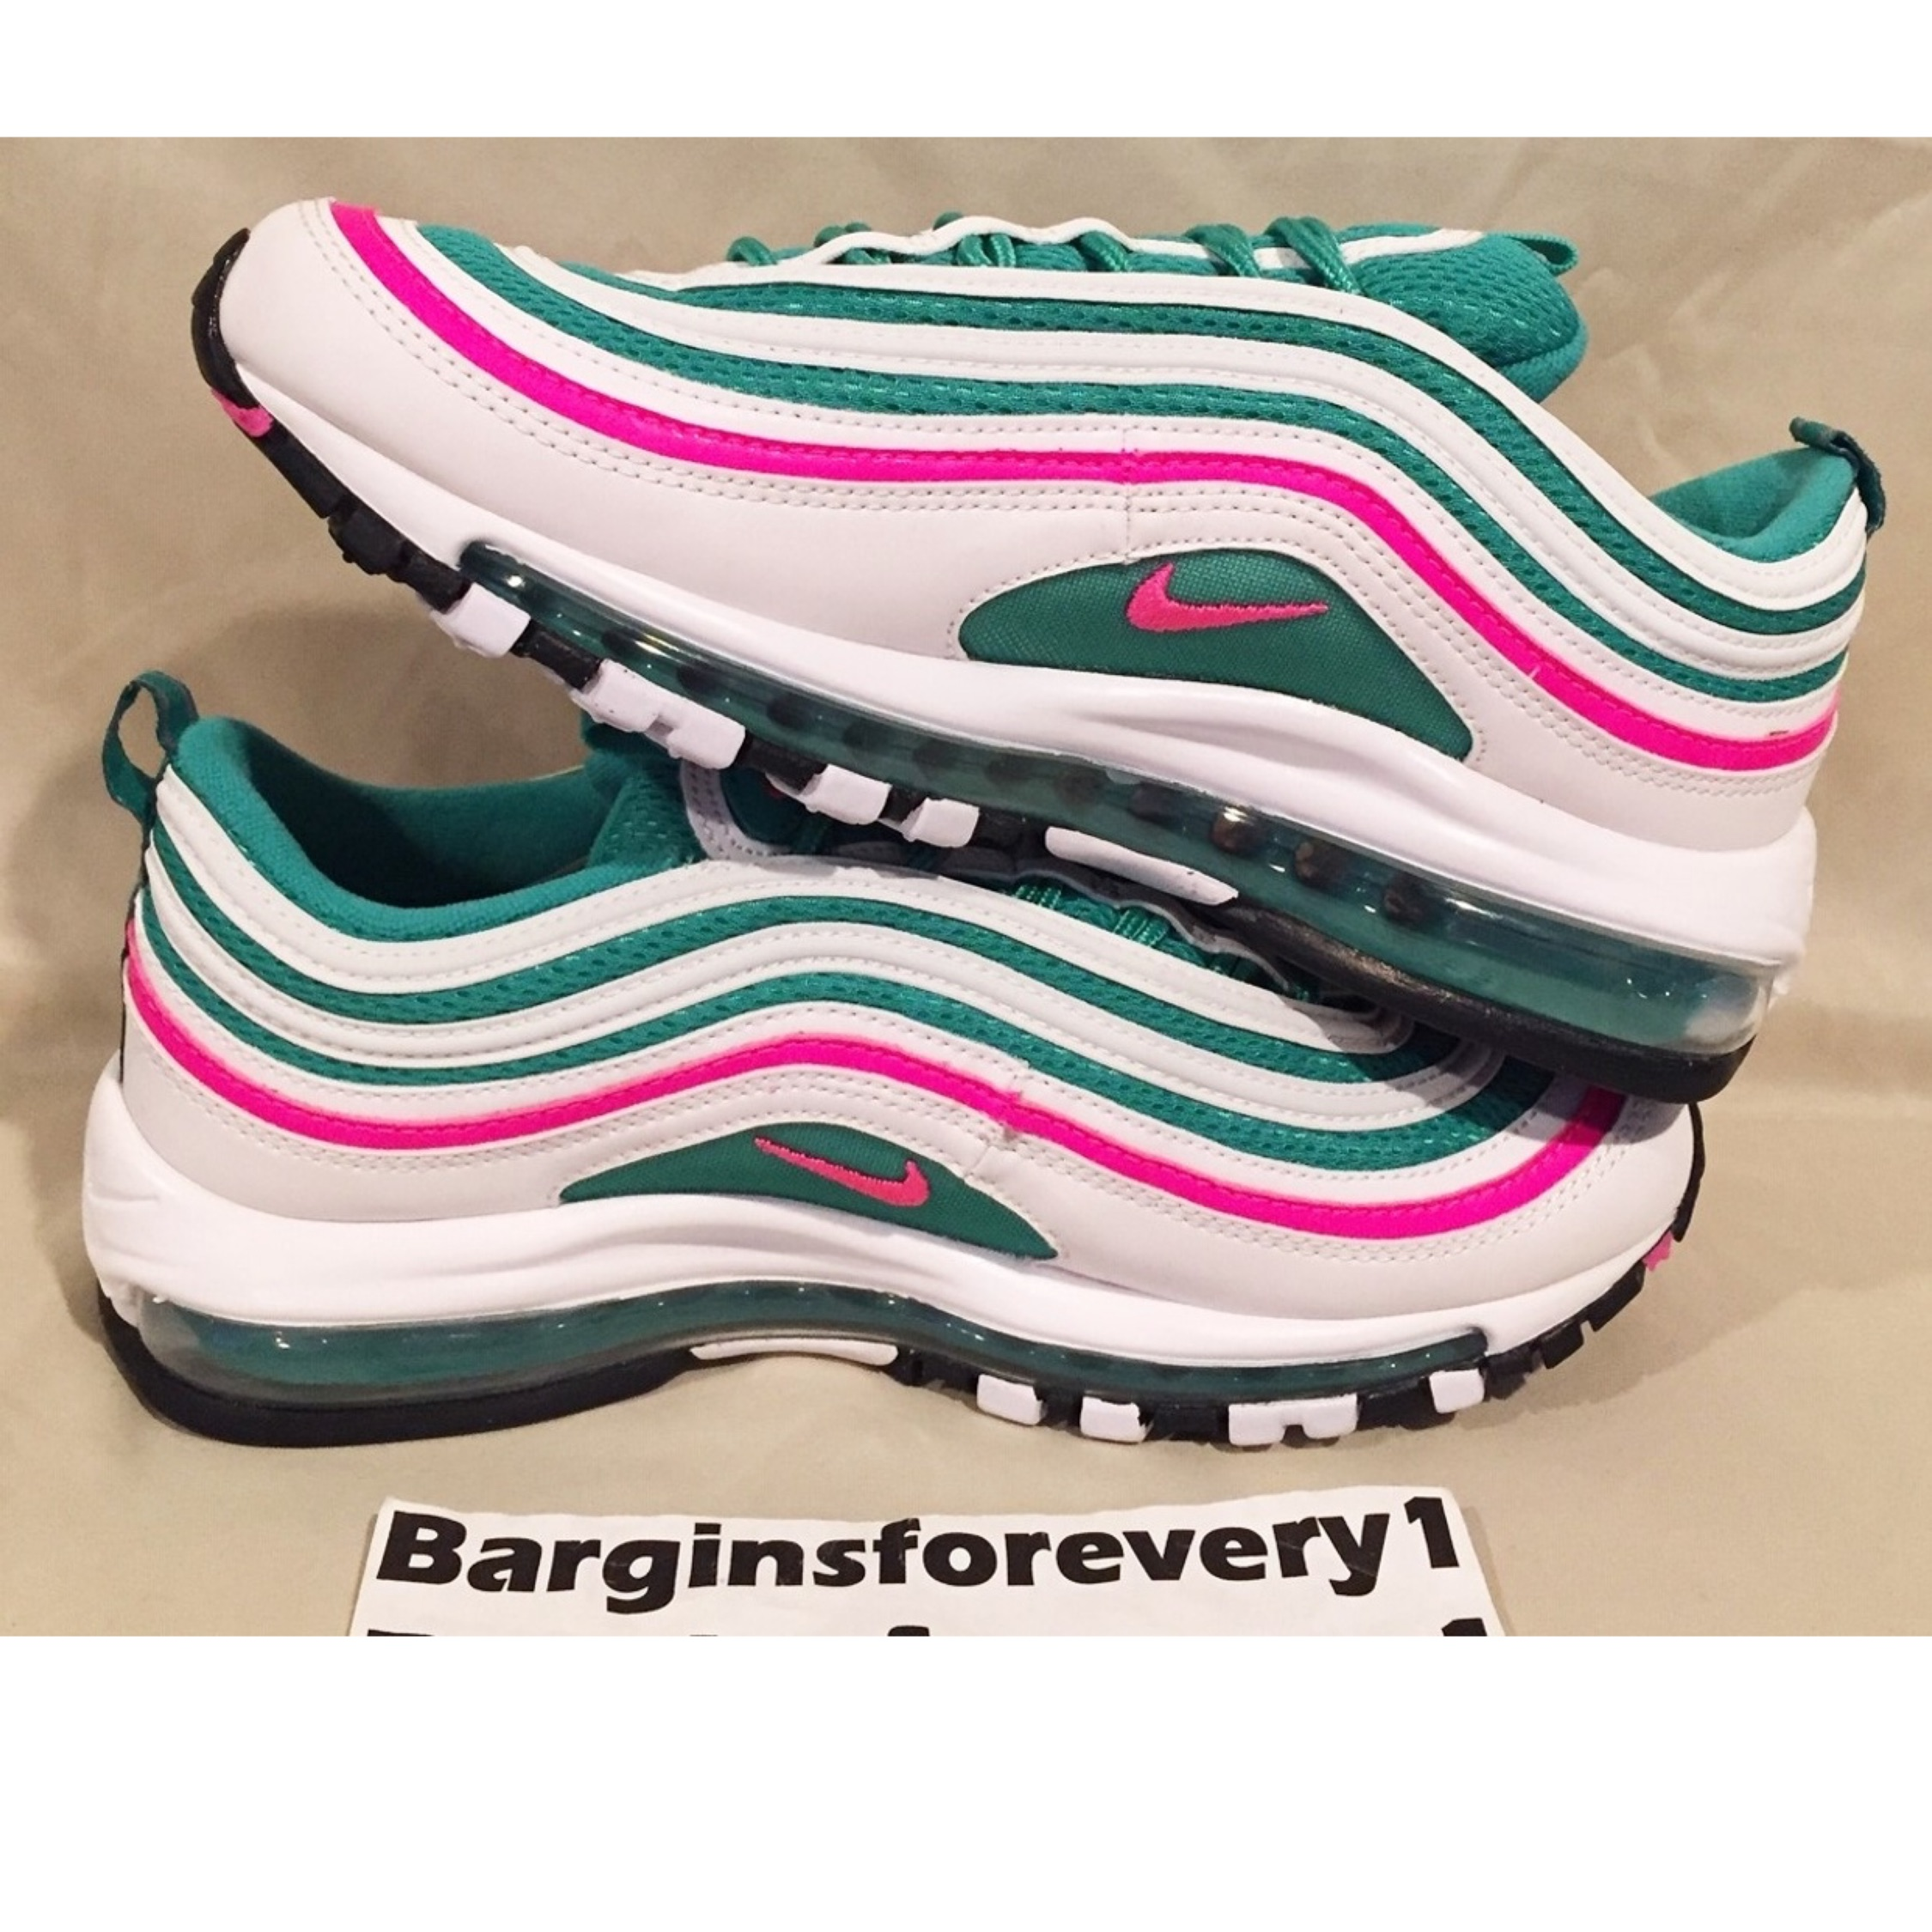 Nike Air Max 97 Kinetic Blast Kicks (Sneakers) 2019  Kicks (Sneakers) in 2019